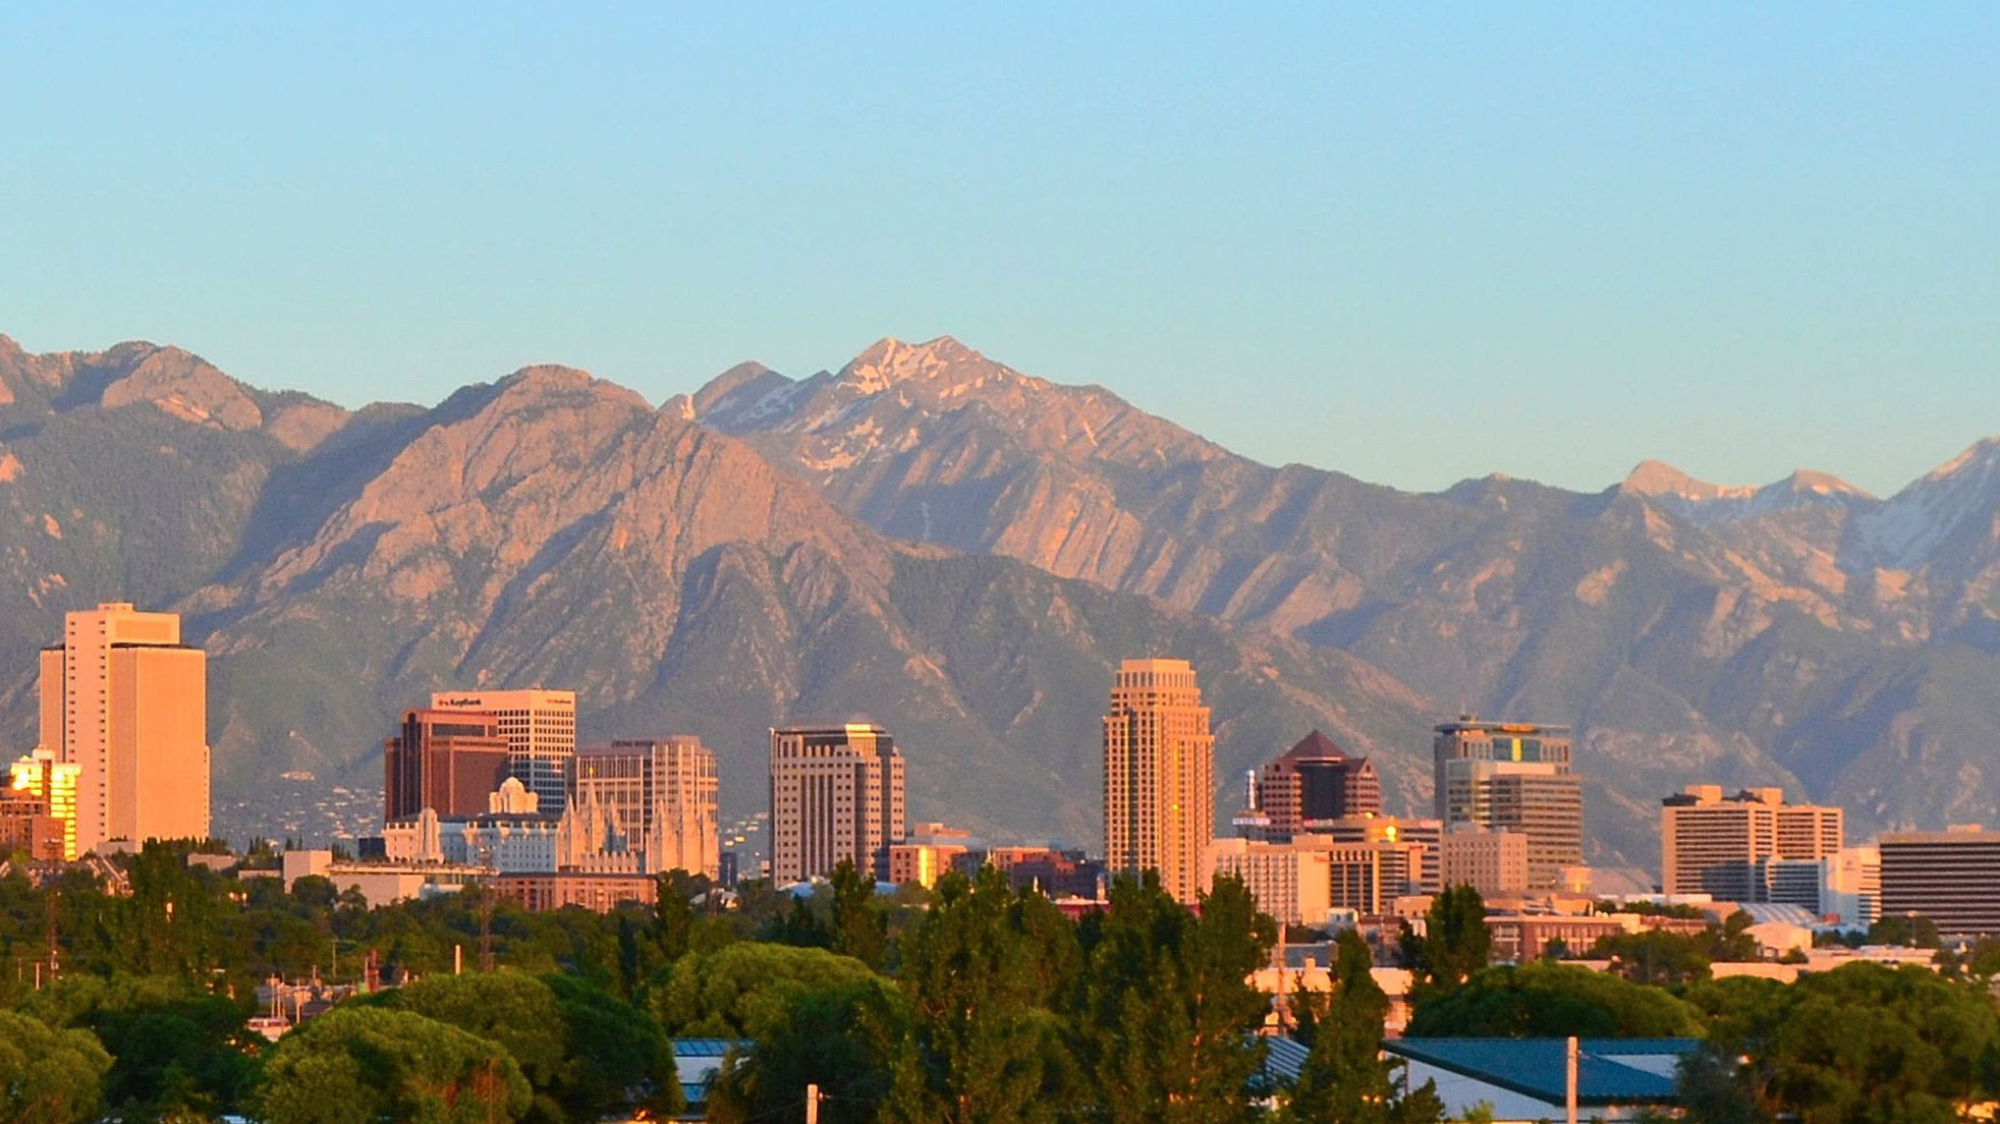 Tall buildings in Salt Lake City against the Wasatch Mountains, under a blue sky